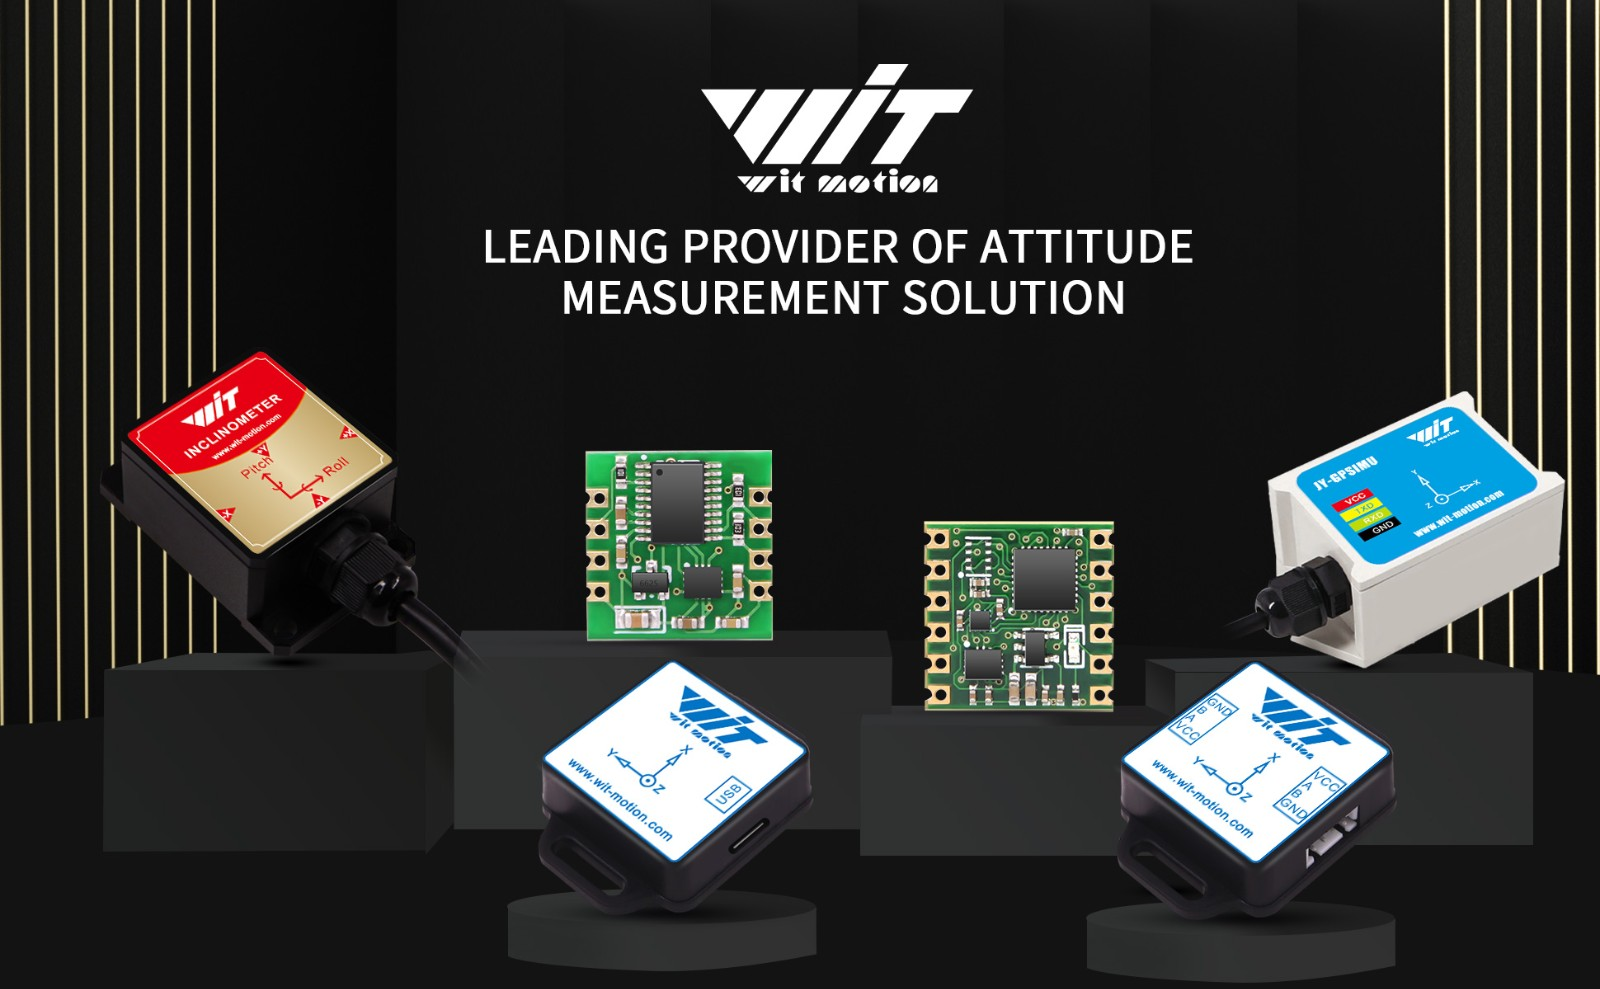 WitMotion WT901C RS232 9 Axis IMU Sensor Tilt Angle Roll Pitch Yaw   Acceleration   Gyroscope   Magnetometer MPU9250 on PC/Android/MCU